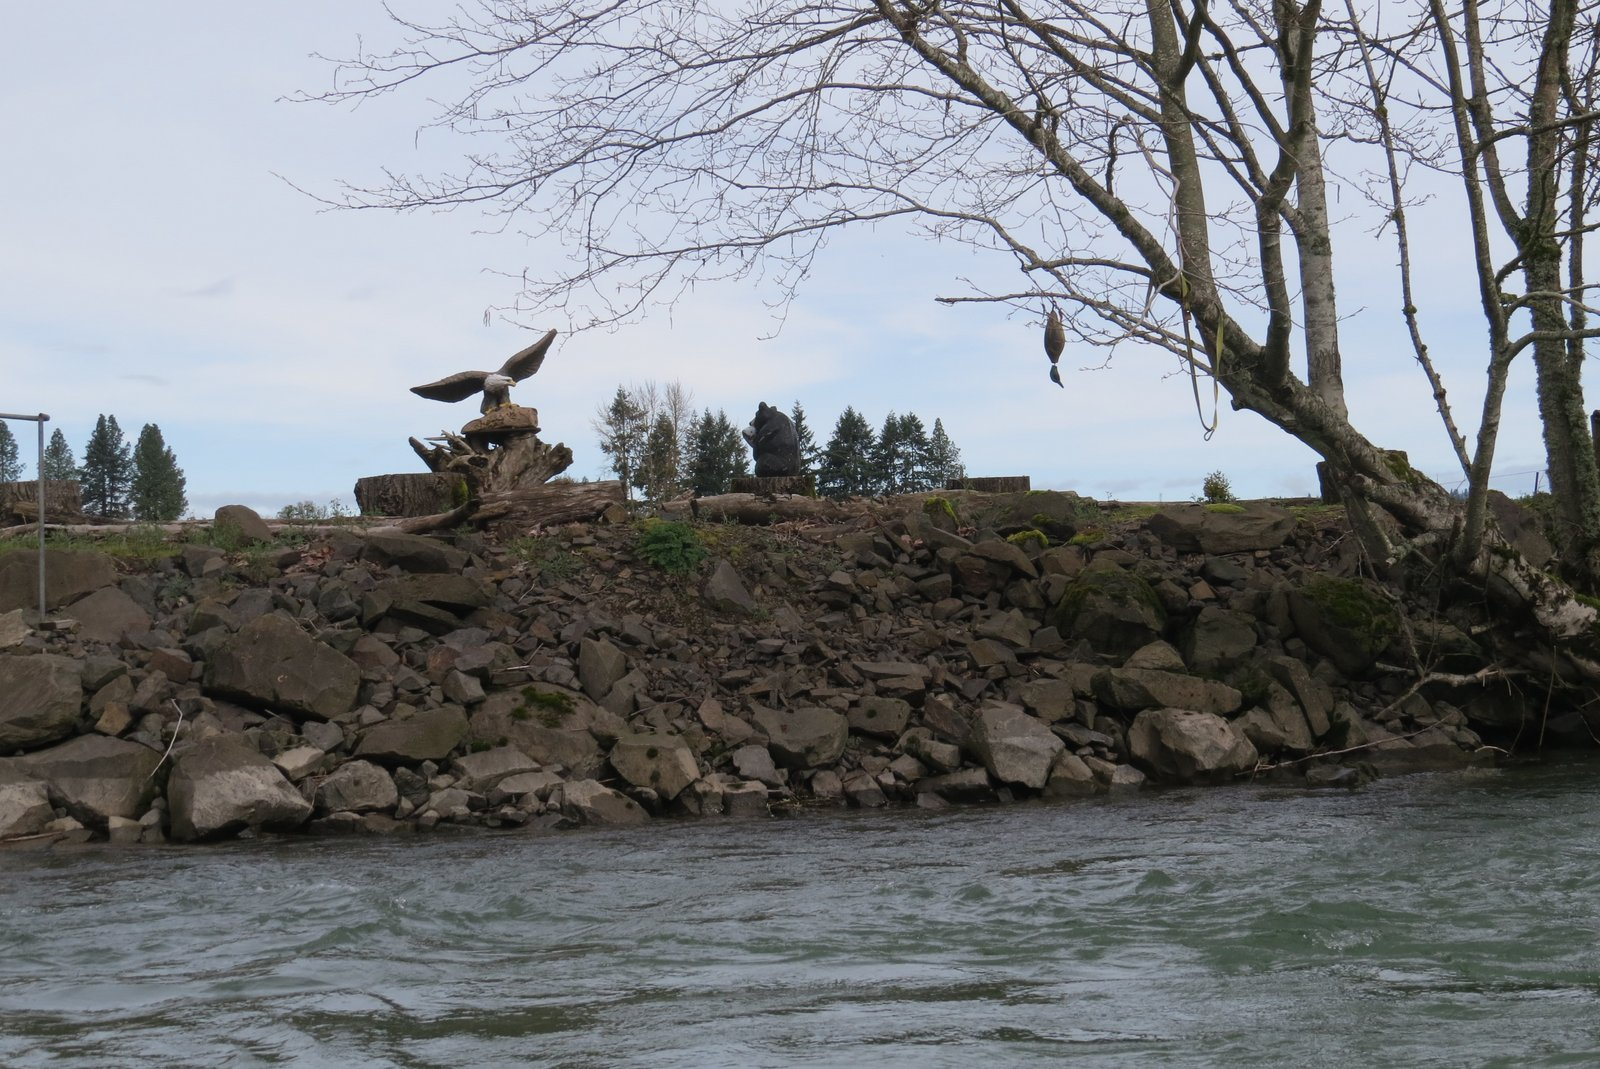 Eagle and Duck on river bank [statues]